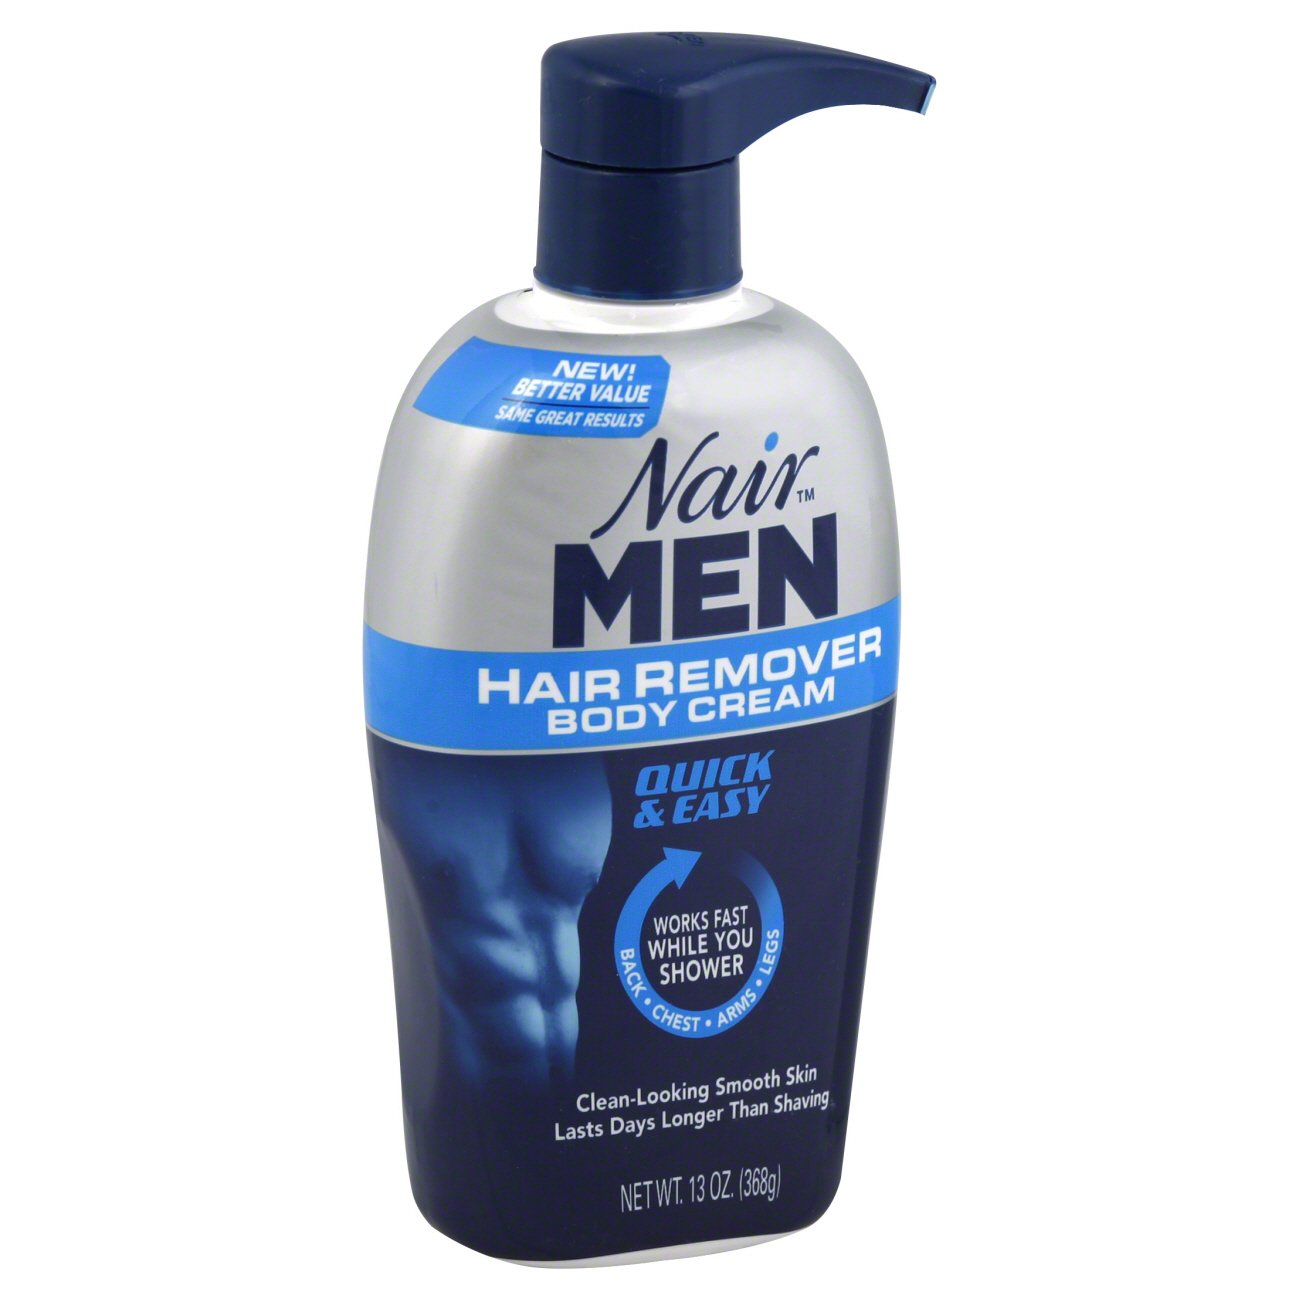 Nair Men Hair Remover Body Cream Shop Depilatories Wax At H E B